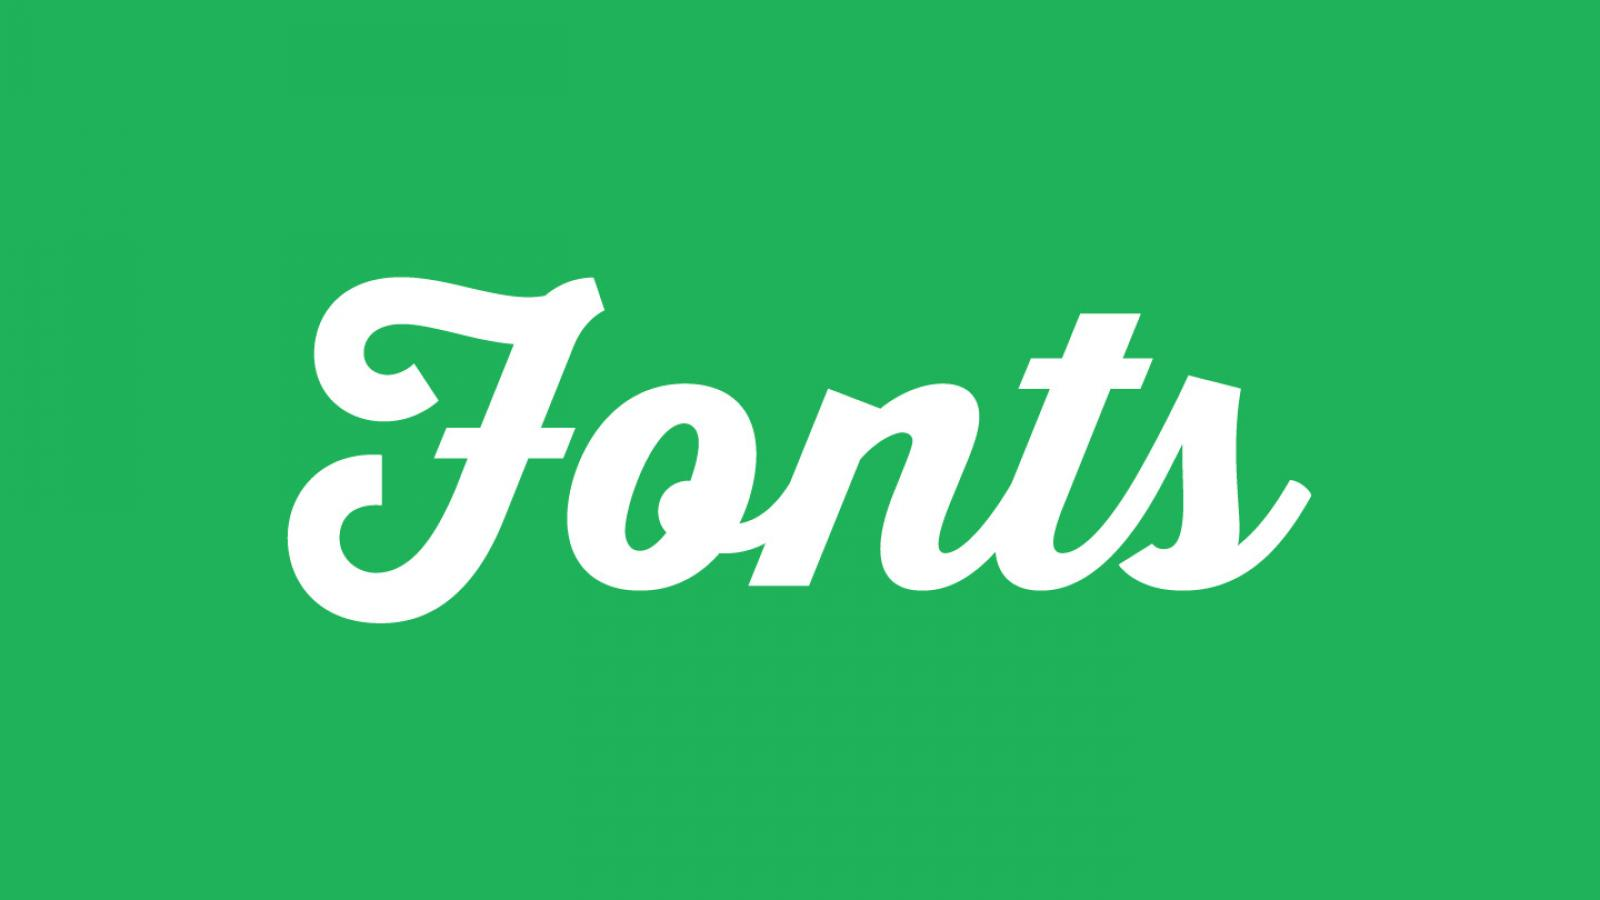 Friday Fresh Free Fonts - Thirsty Script, Arca Majora, Seriffic